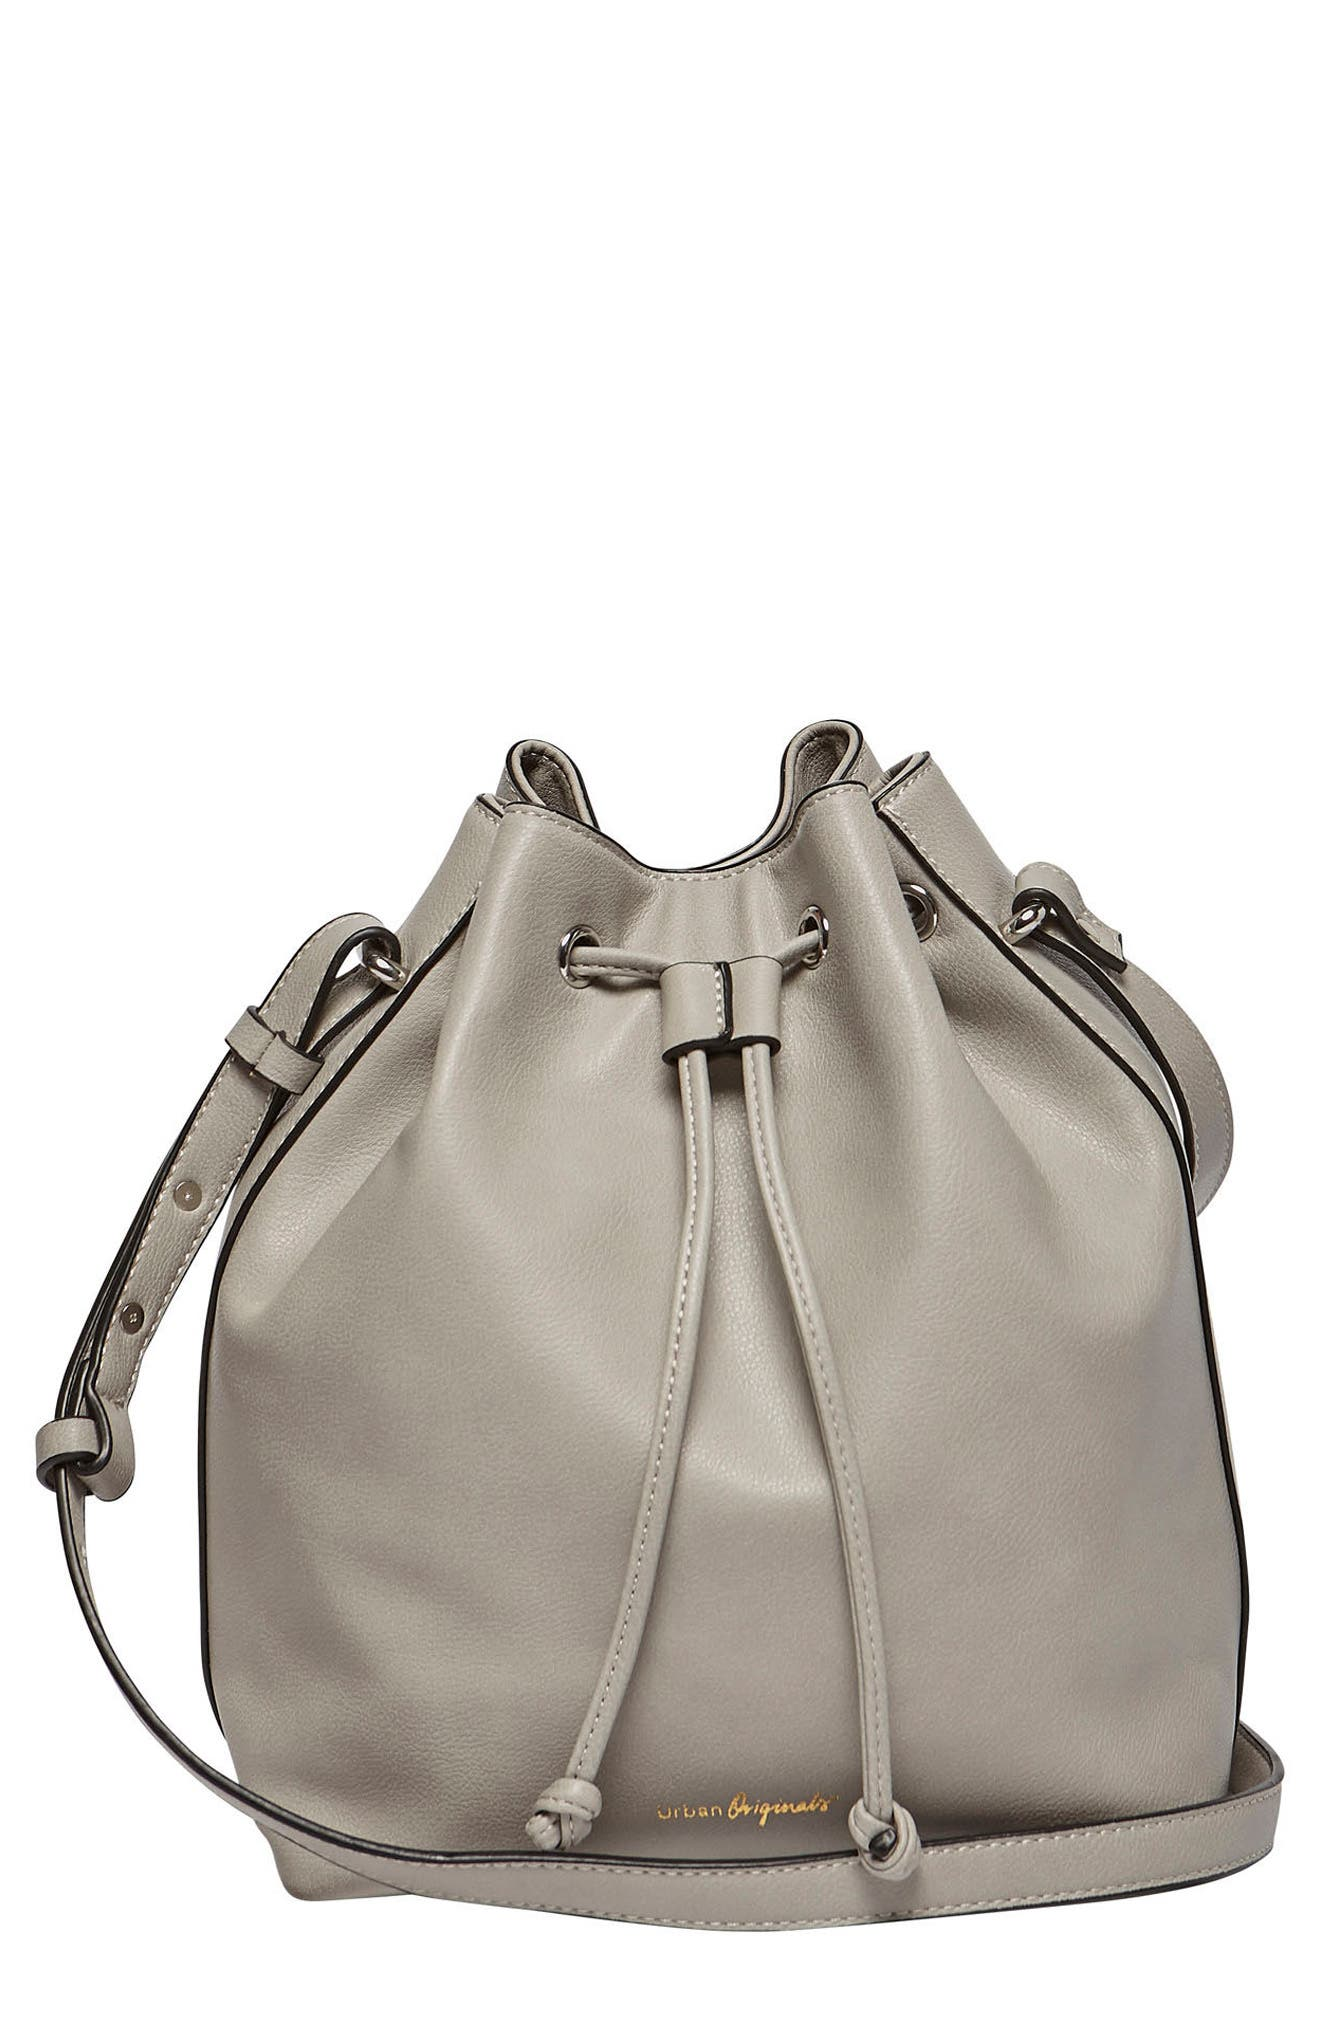 Take Me Home Vegan Leather Bag,                         Main,                         color, Grey Battleship